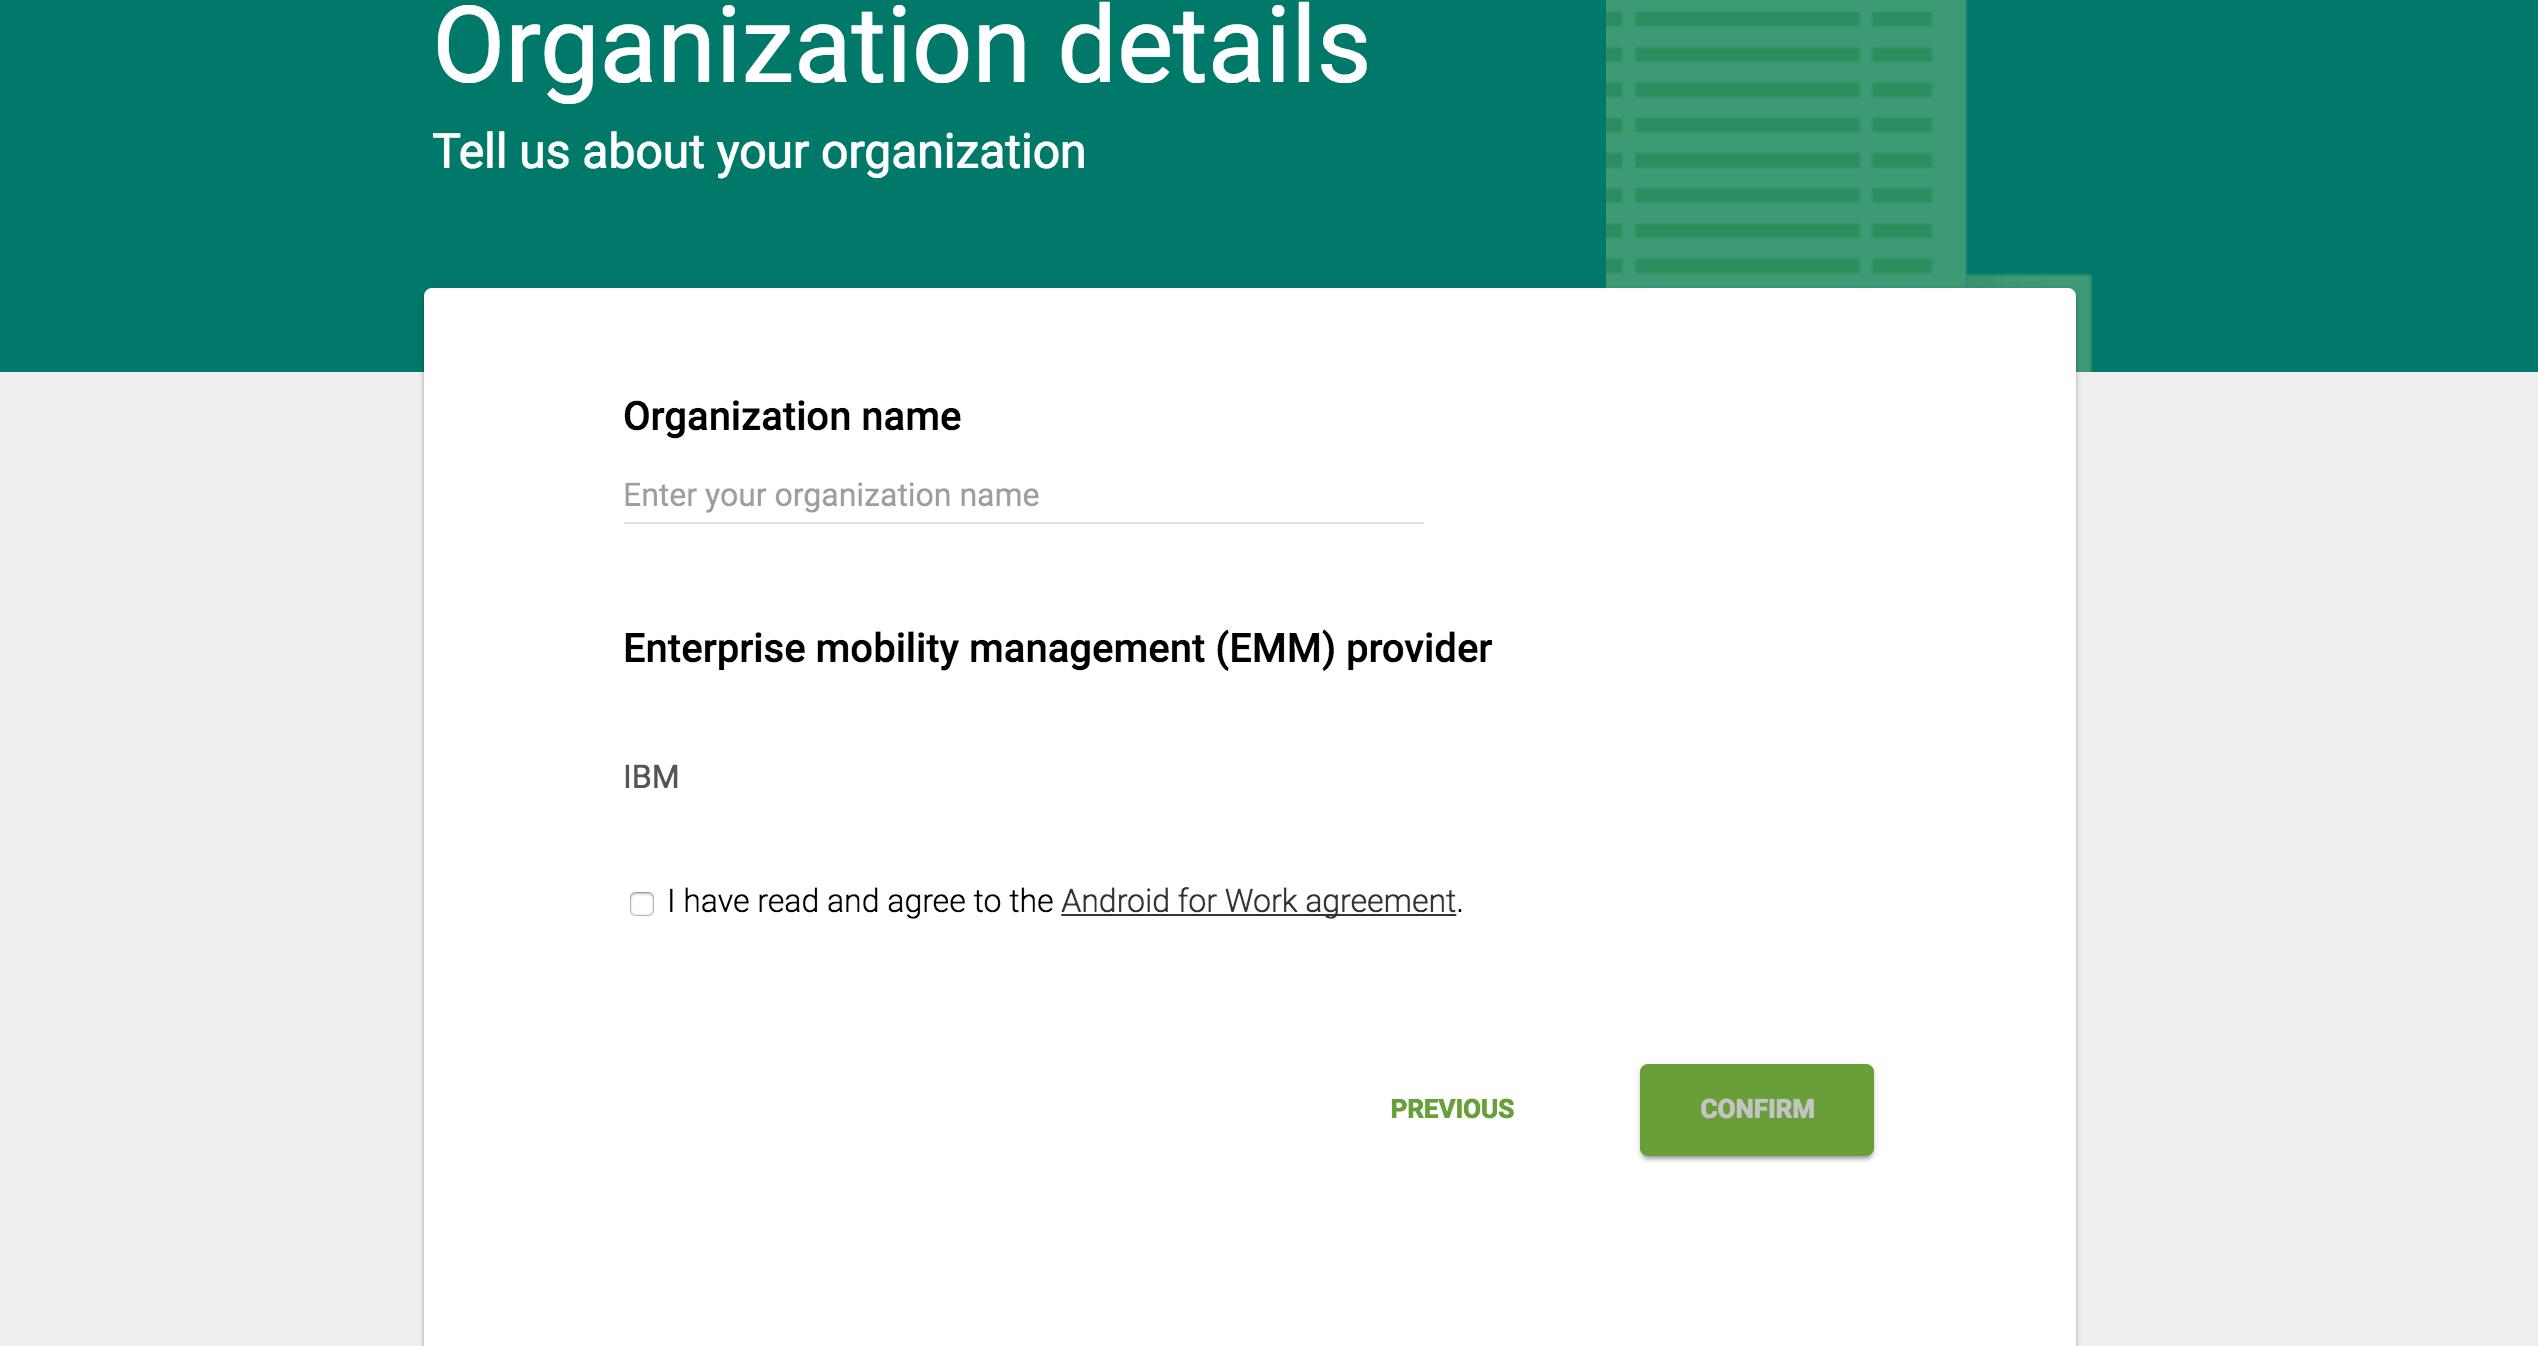 Configuring MaaS360 integration with Android Enterprise